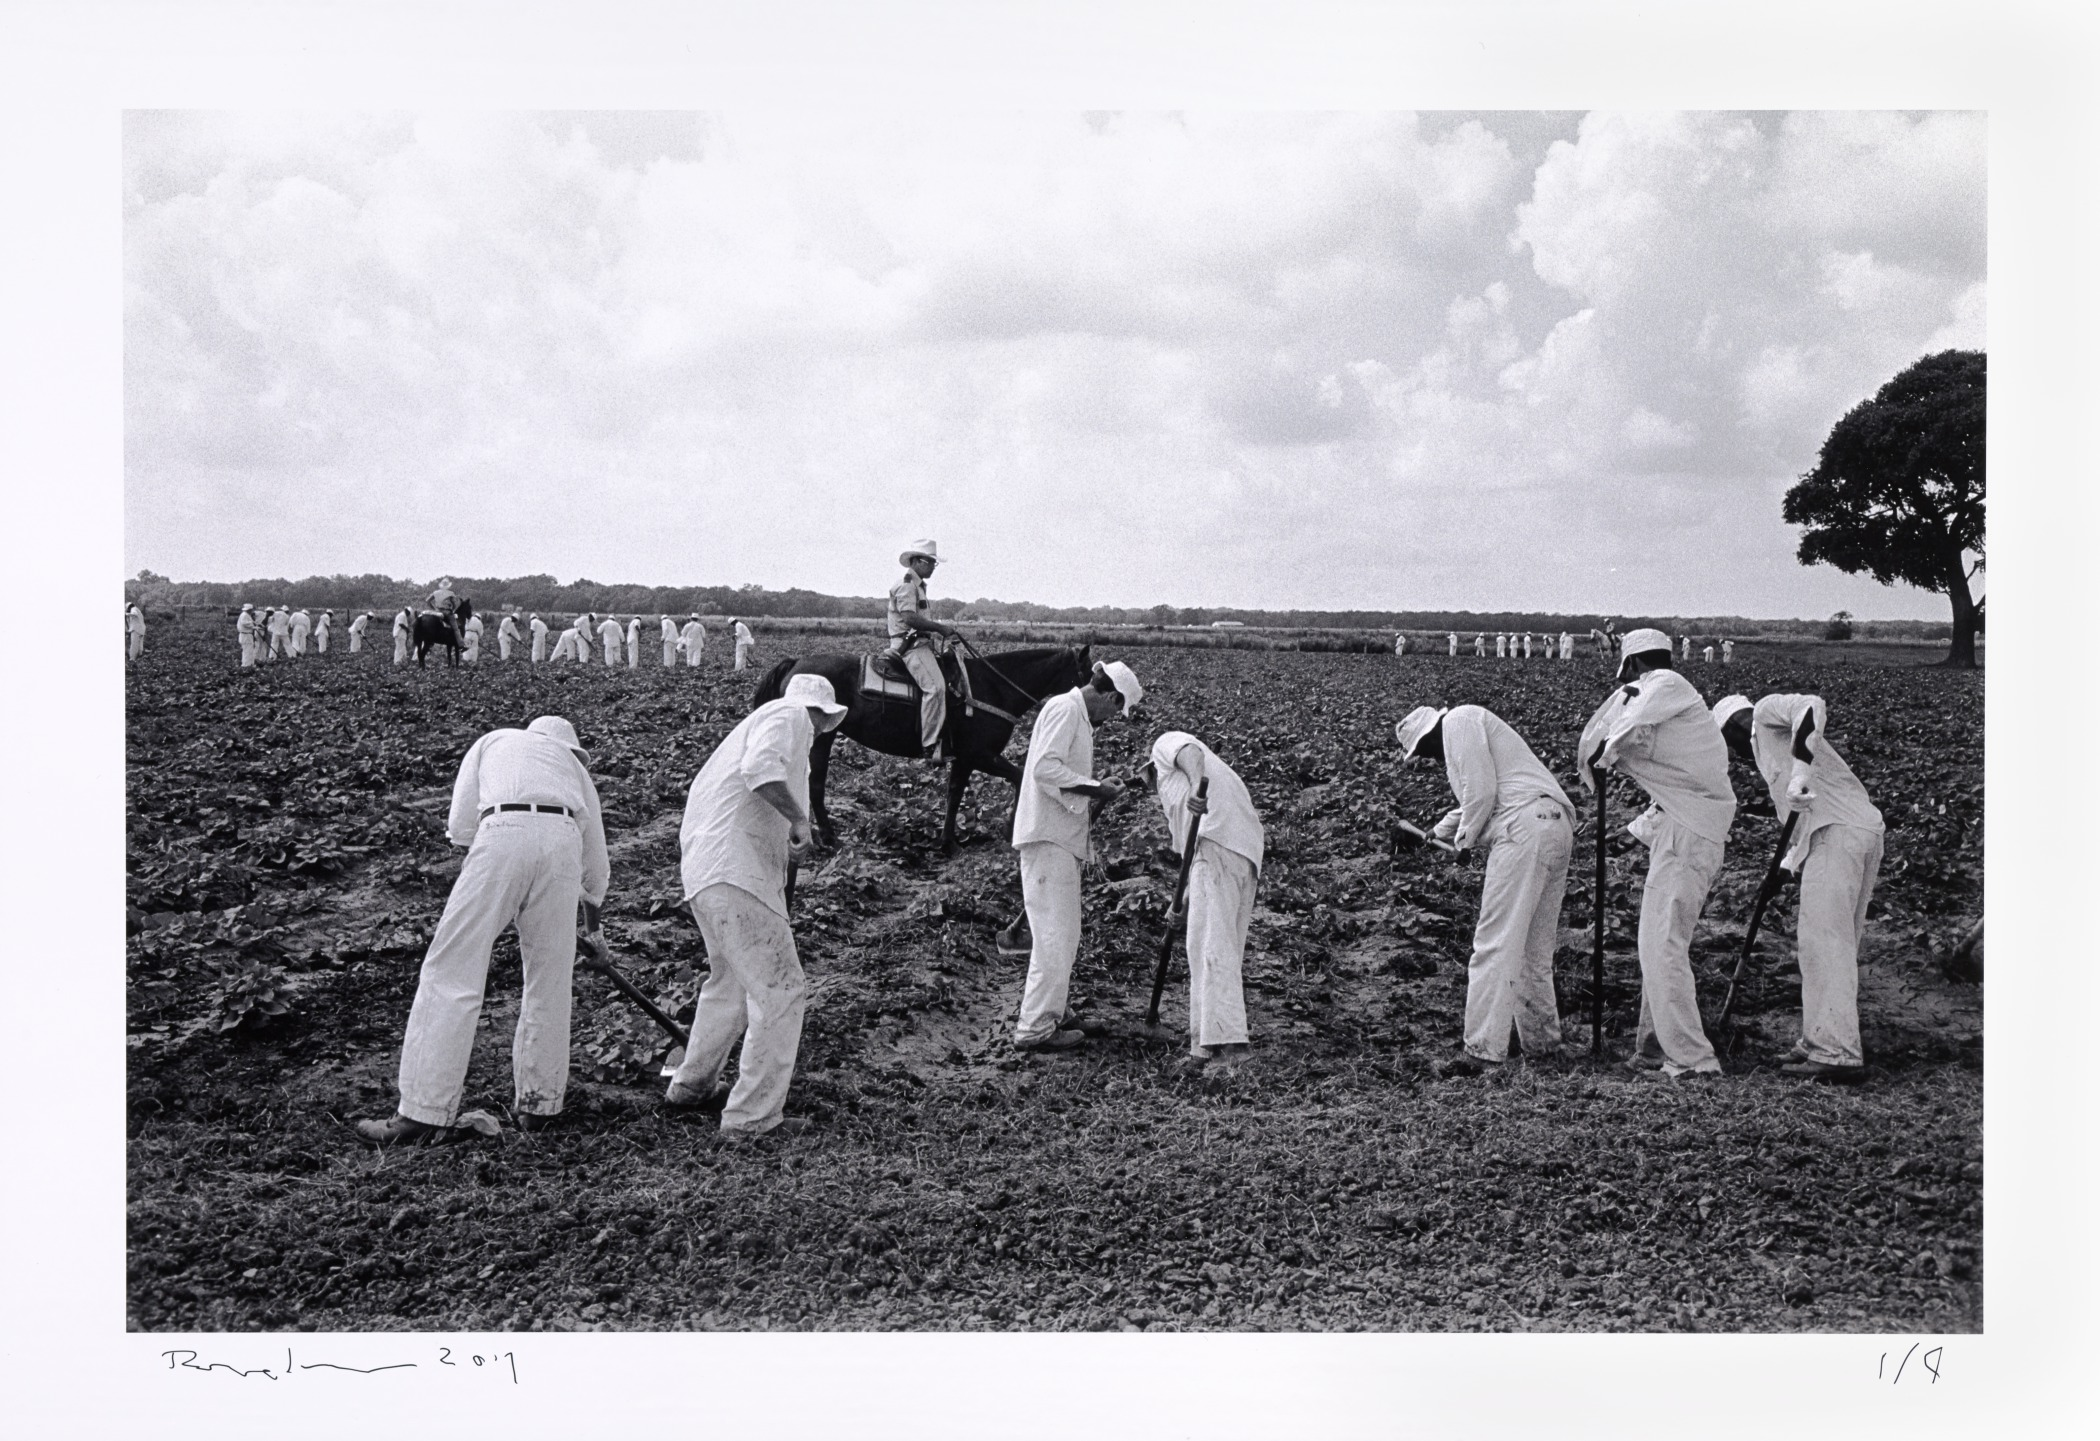 Even after the 1912 ban on Texas' convict leasing system, the prisoners were put to work. The state-owned prison farms continued to expand well into the 1950s. Ellis Prison Farm, Texas from the series Inside the Wire, 1978. Bruce Jackson. (printed 2017) (Collection Albright-Knox Art Gallery, Buffalo, New York. Gift of the artist, 2017) (source: https://www.albrightknox.org/artworks/p20176217-ellis-prison-farm-texas-series-inside-wire)